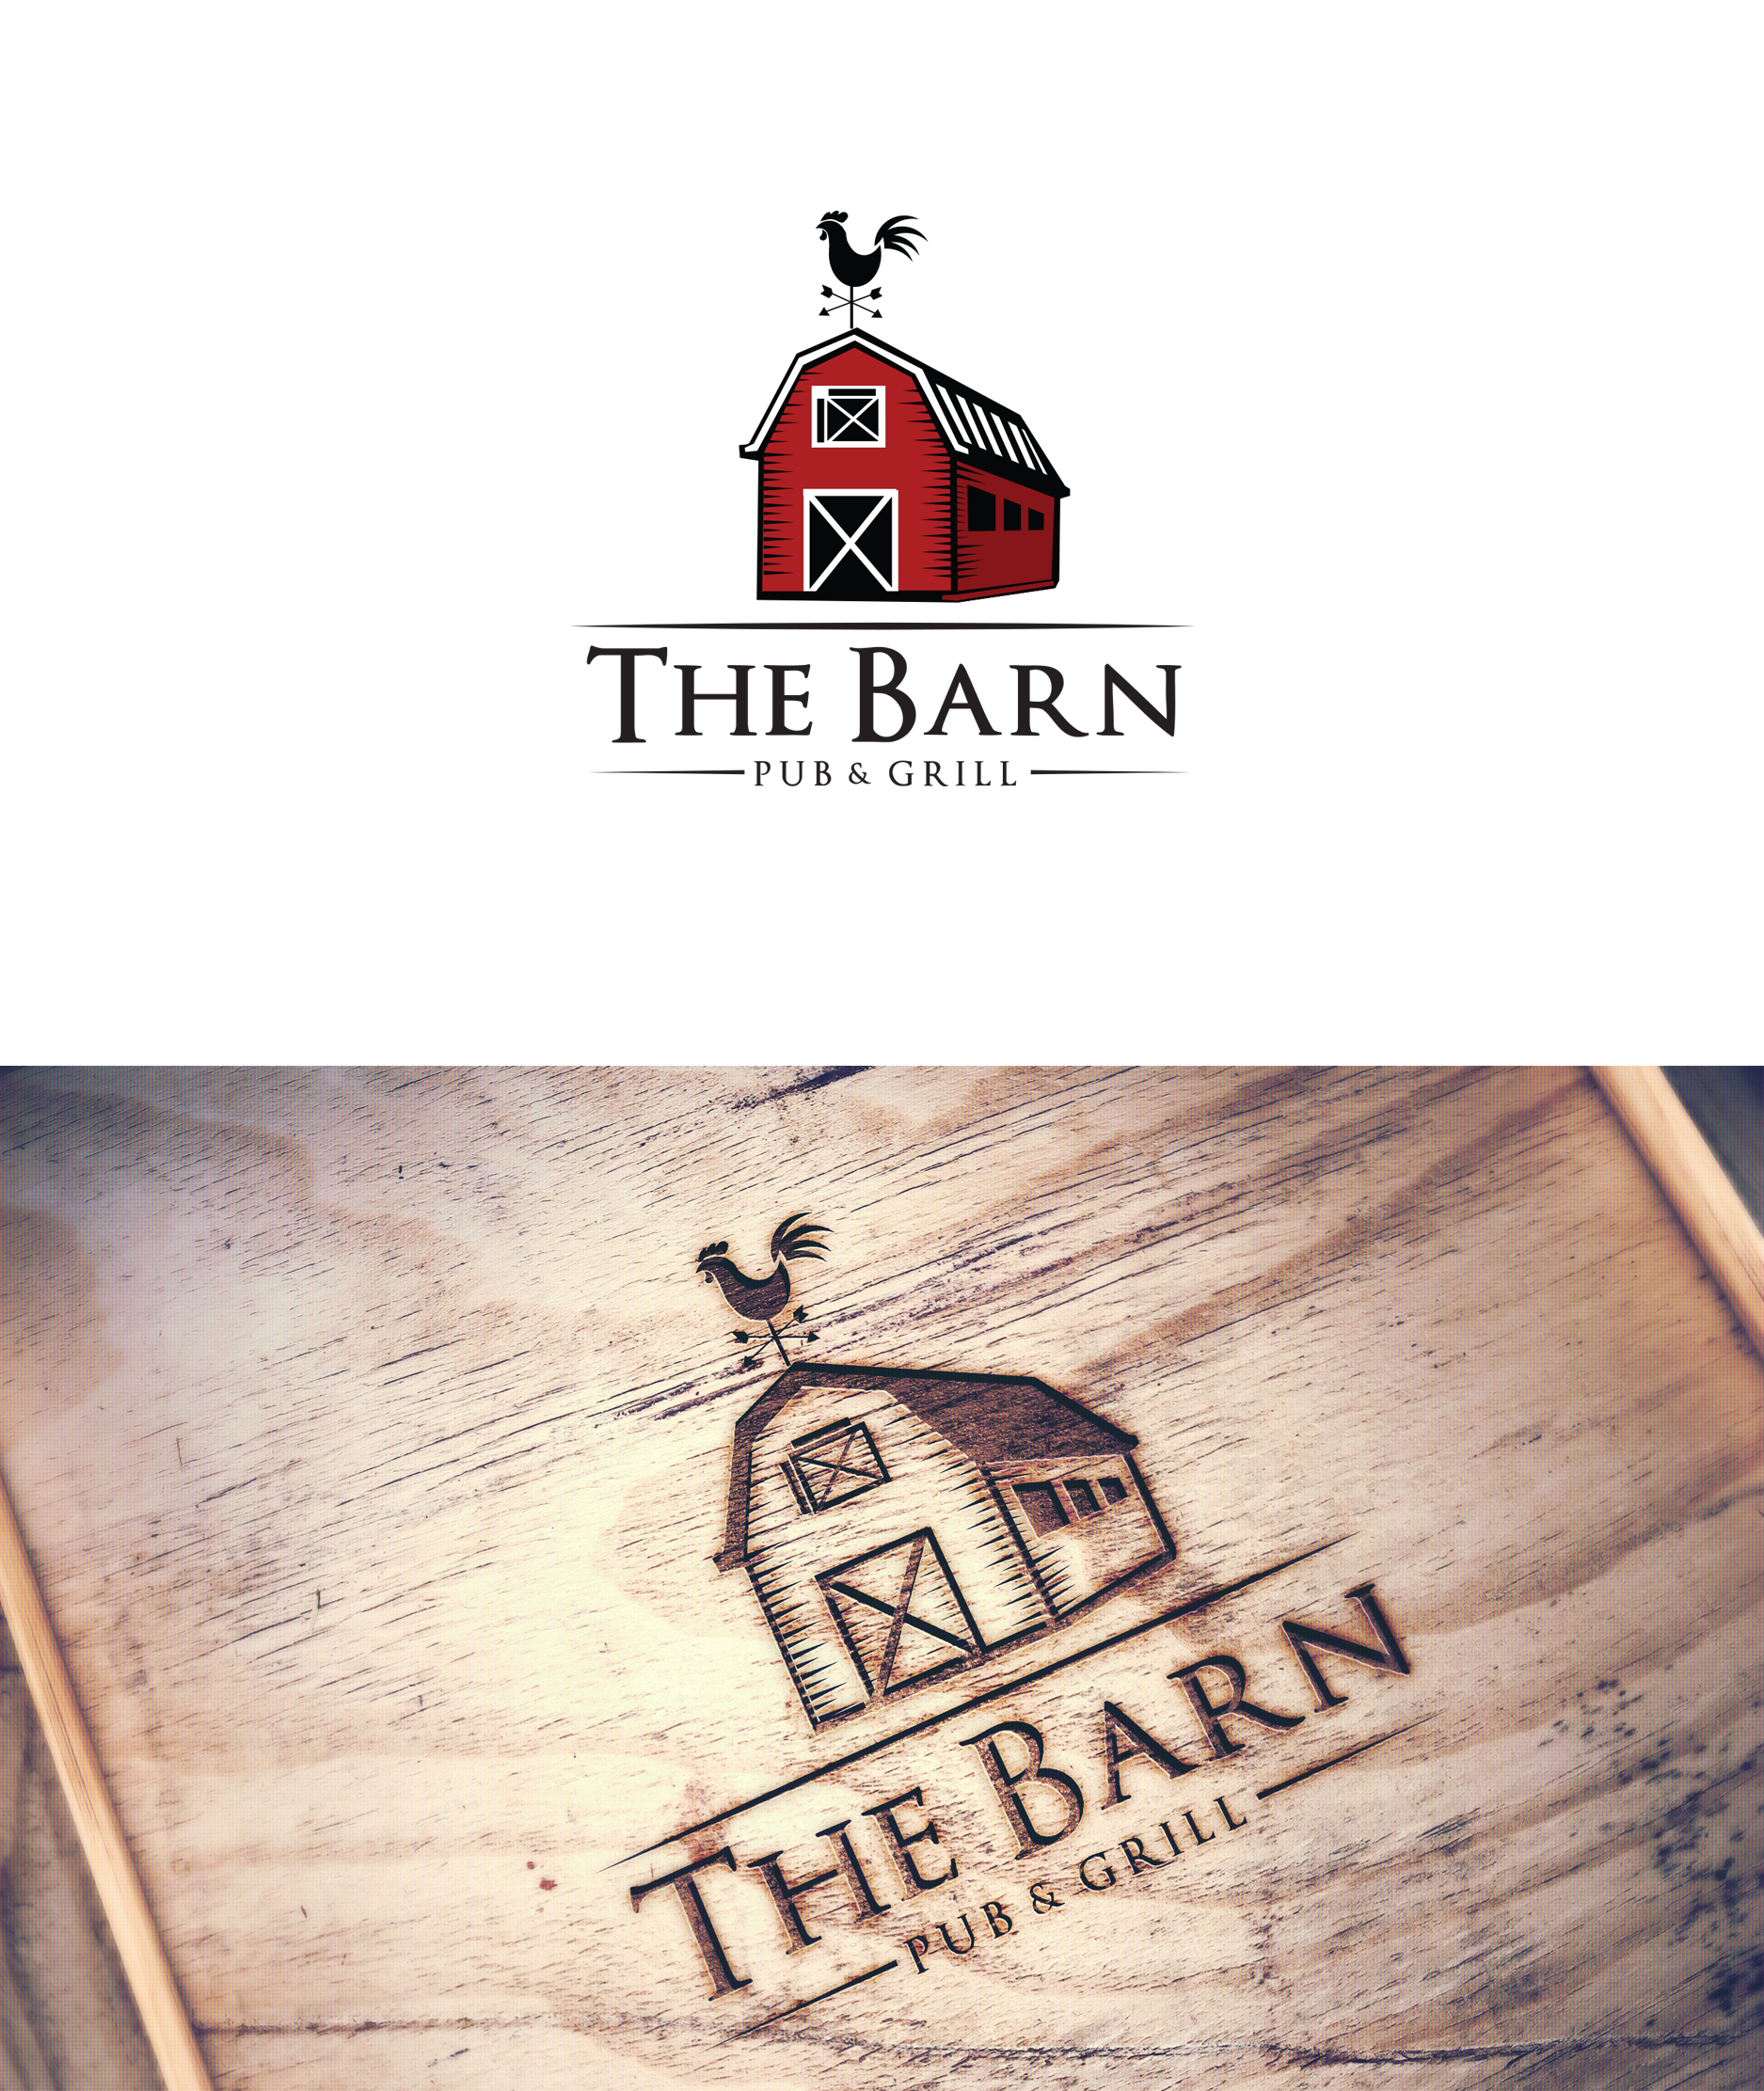 Create a 'rustic, red barn' logo for a pub & grill